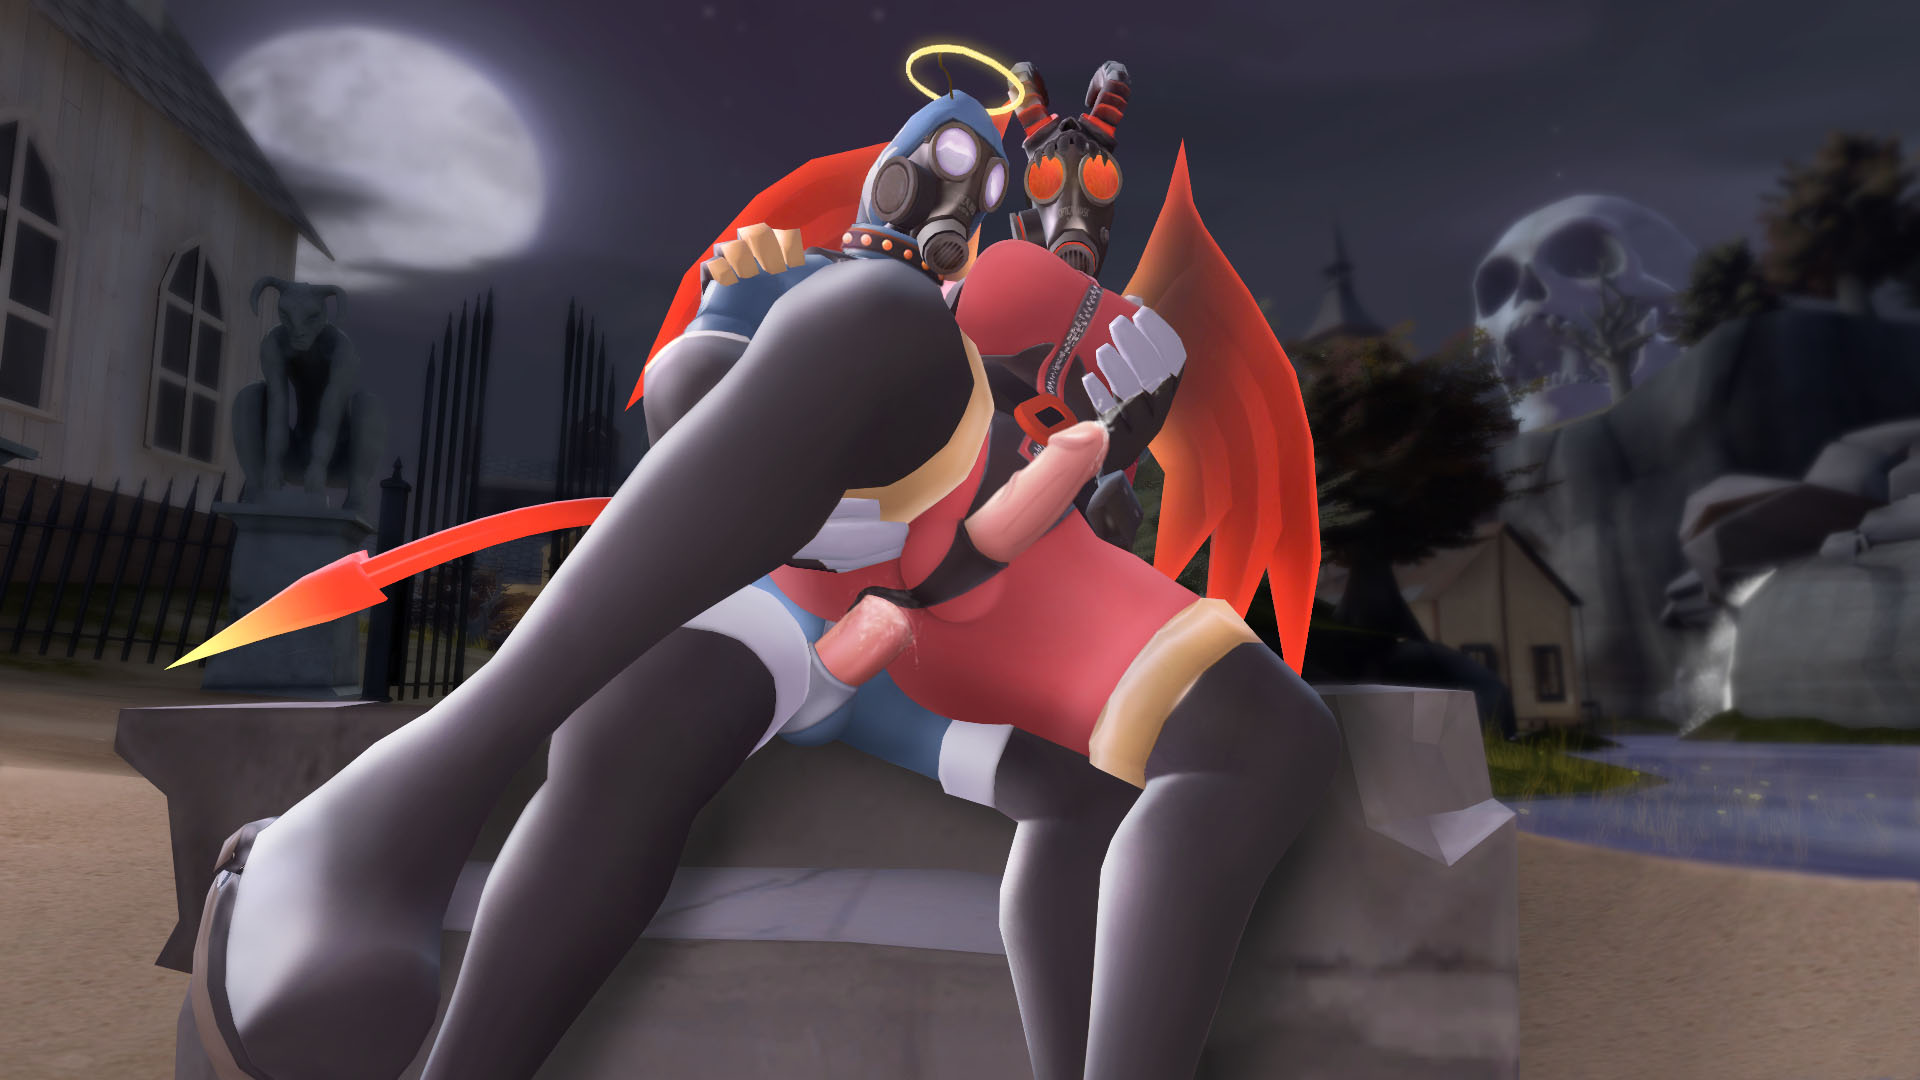 The overwatch fem pyro sex gif